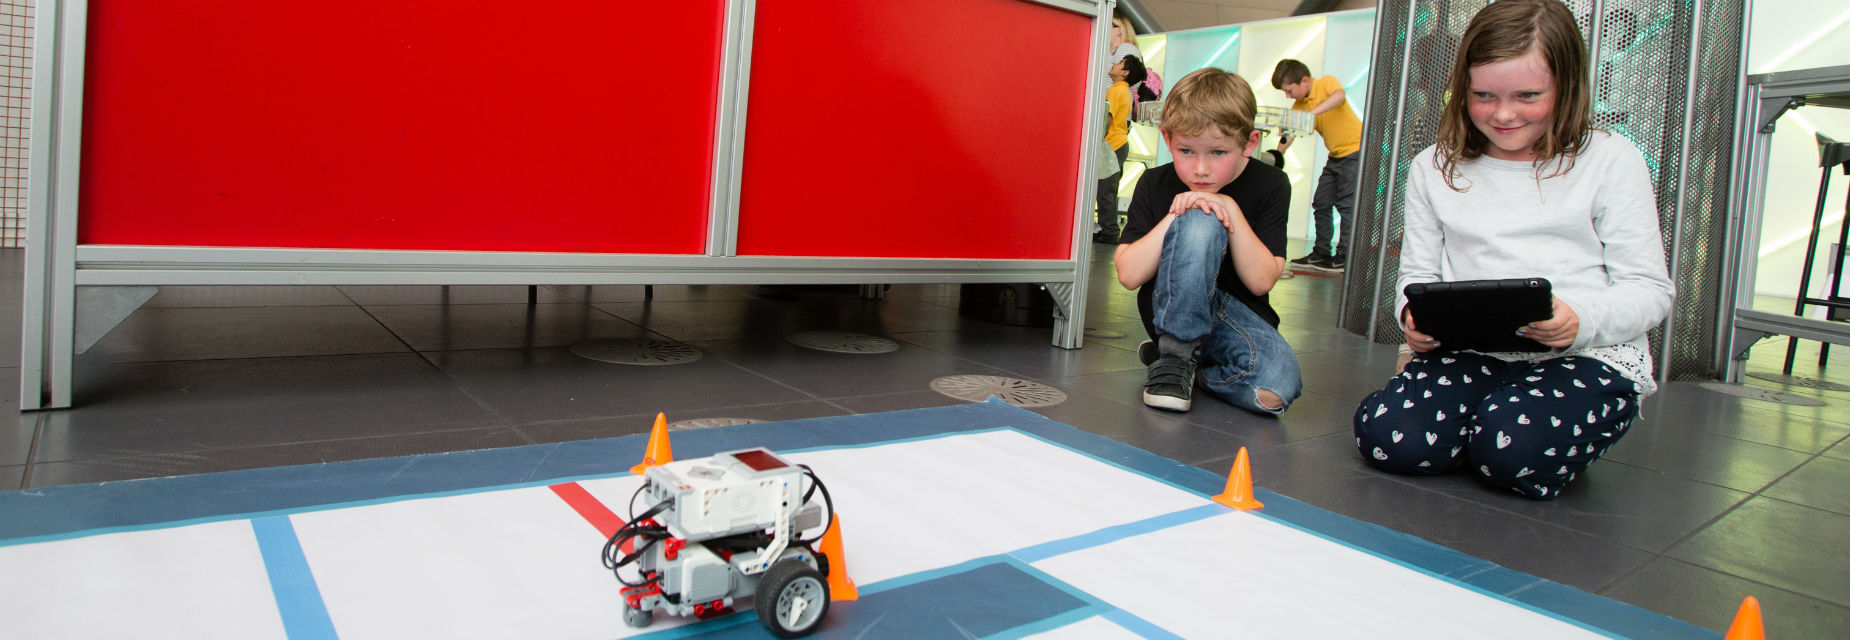 Boy and girl controlling the lego mindstorm robot